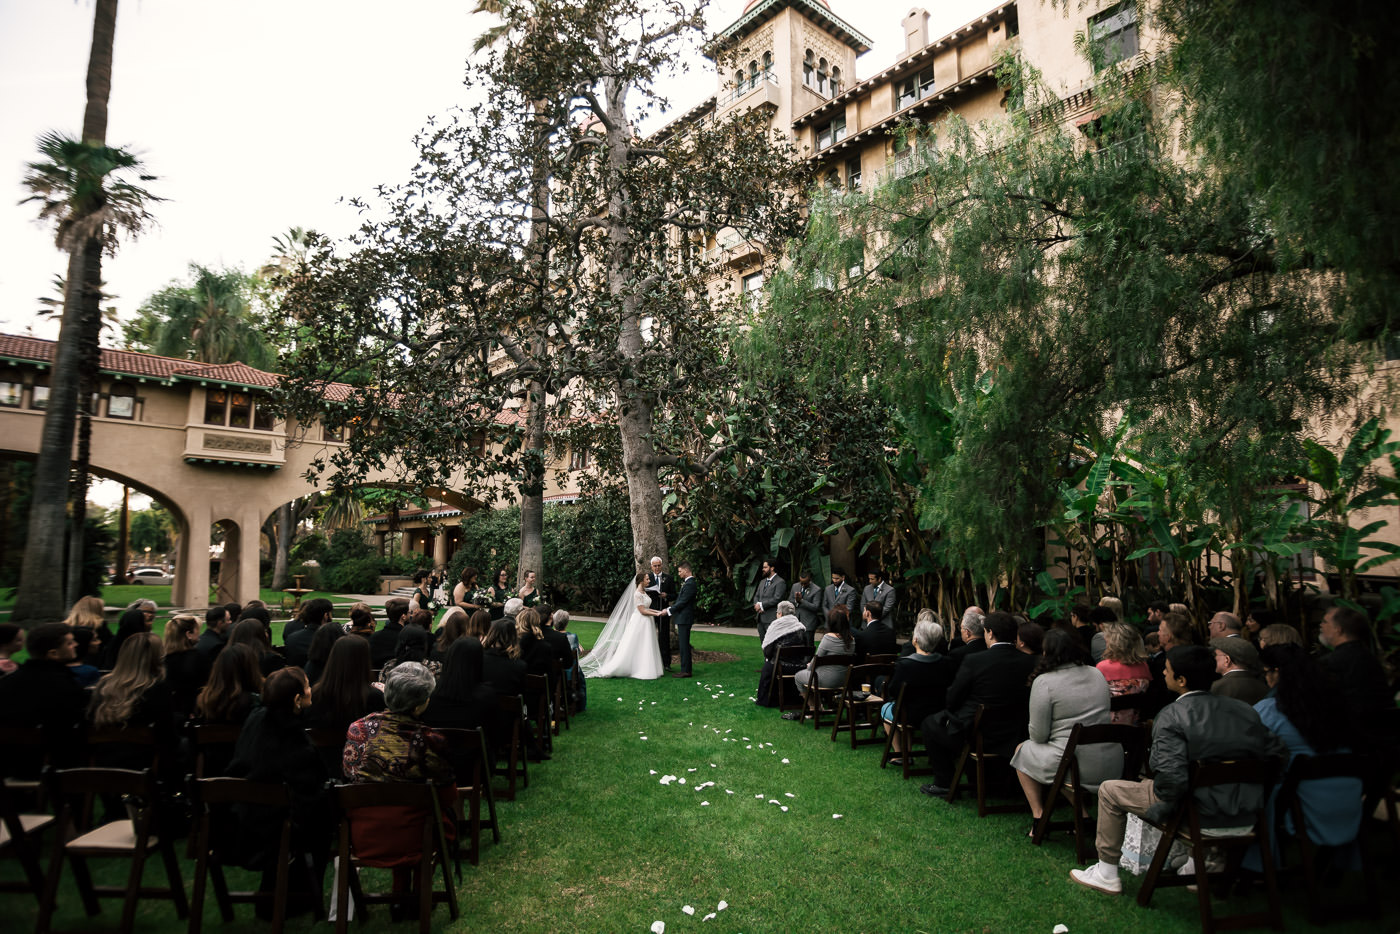 Wedding in Pasadena with the Castle Green in the background.